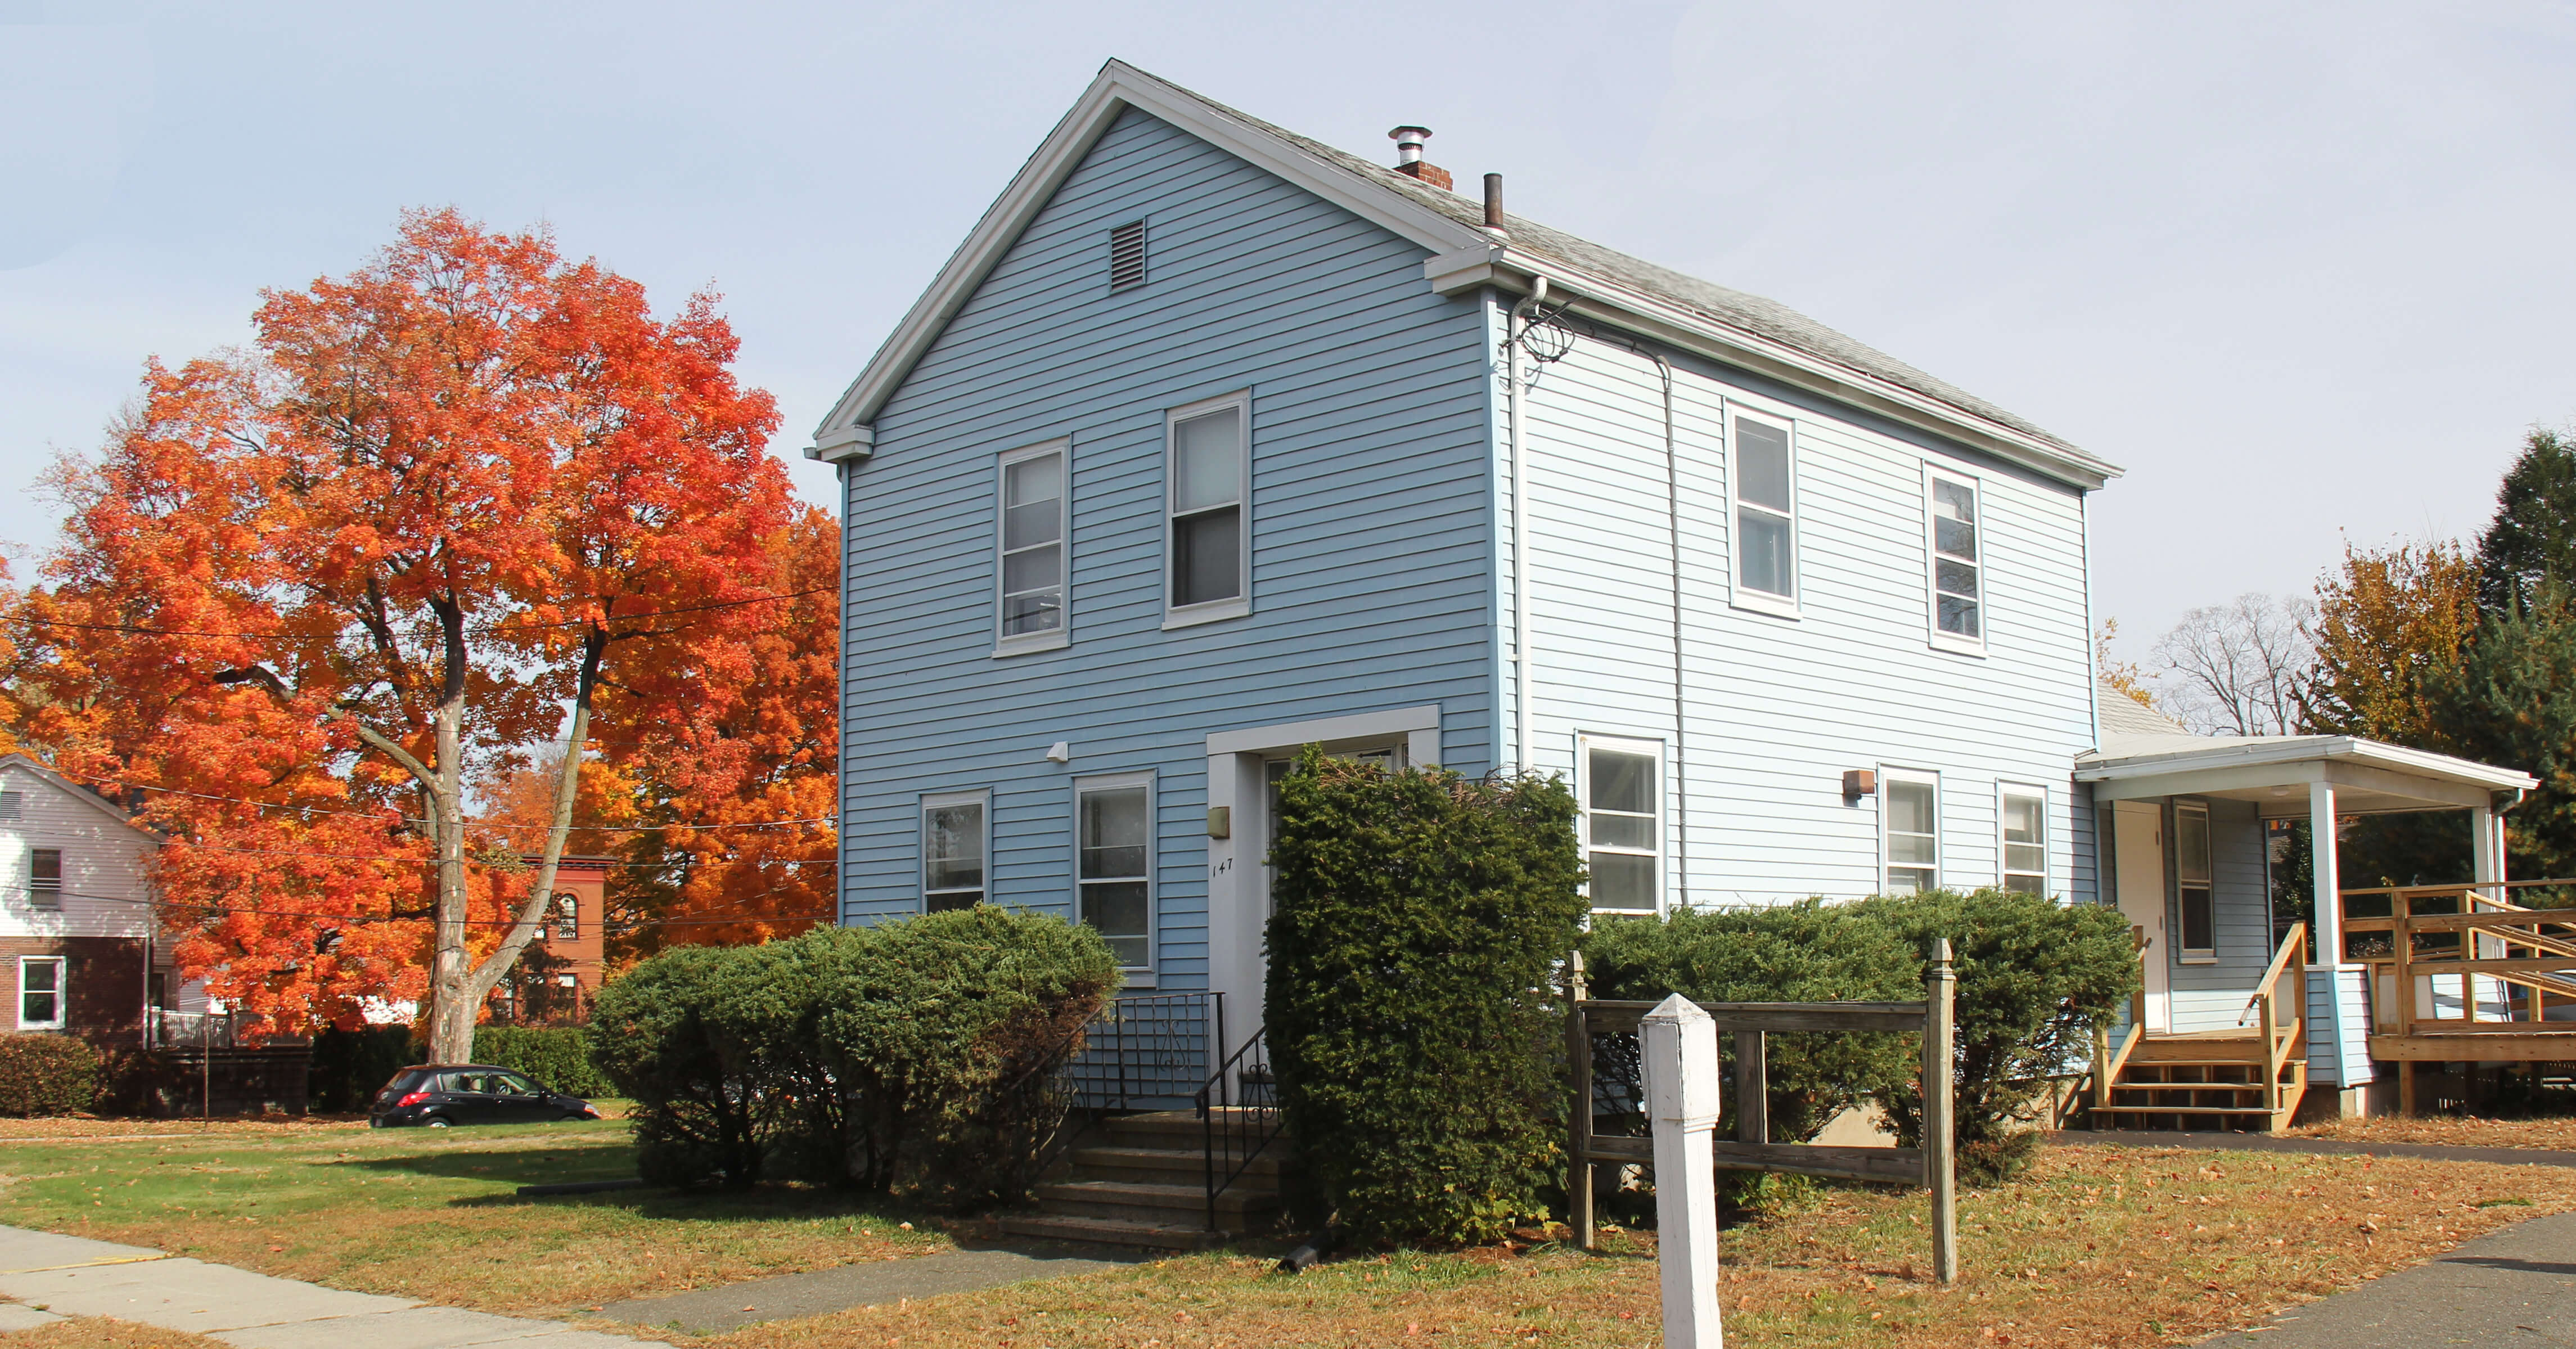 Photo of the Blue House